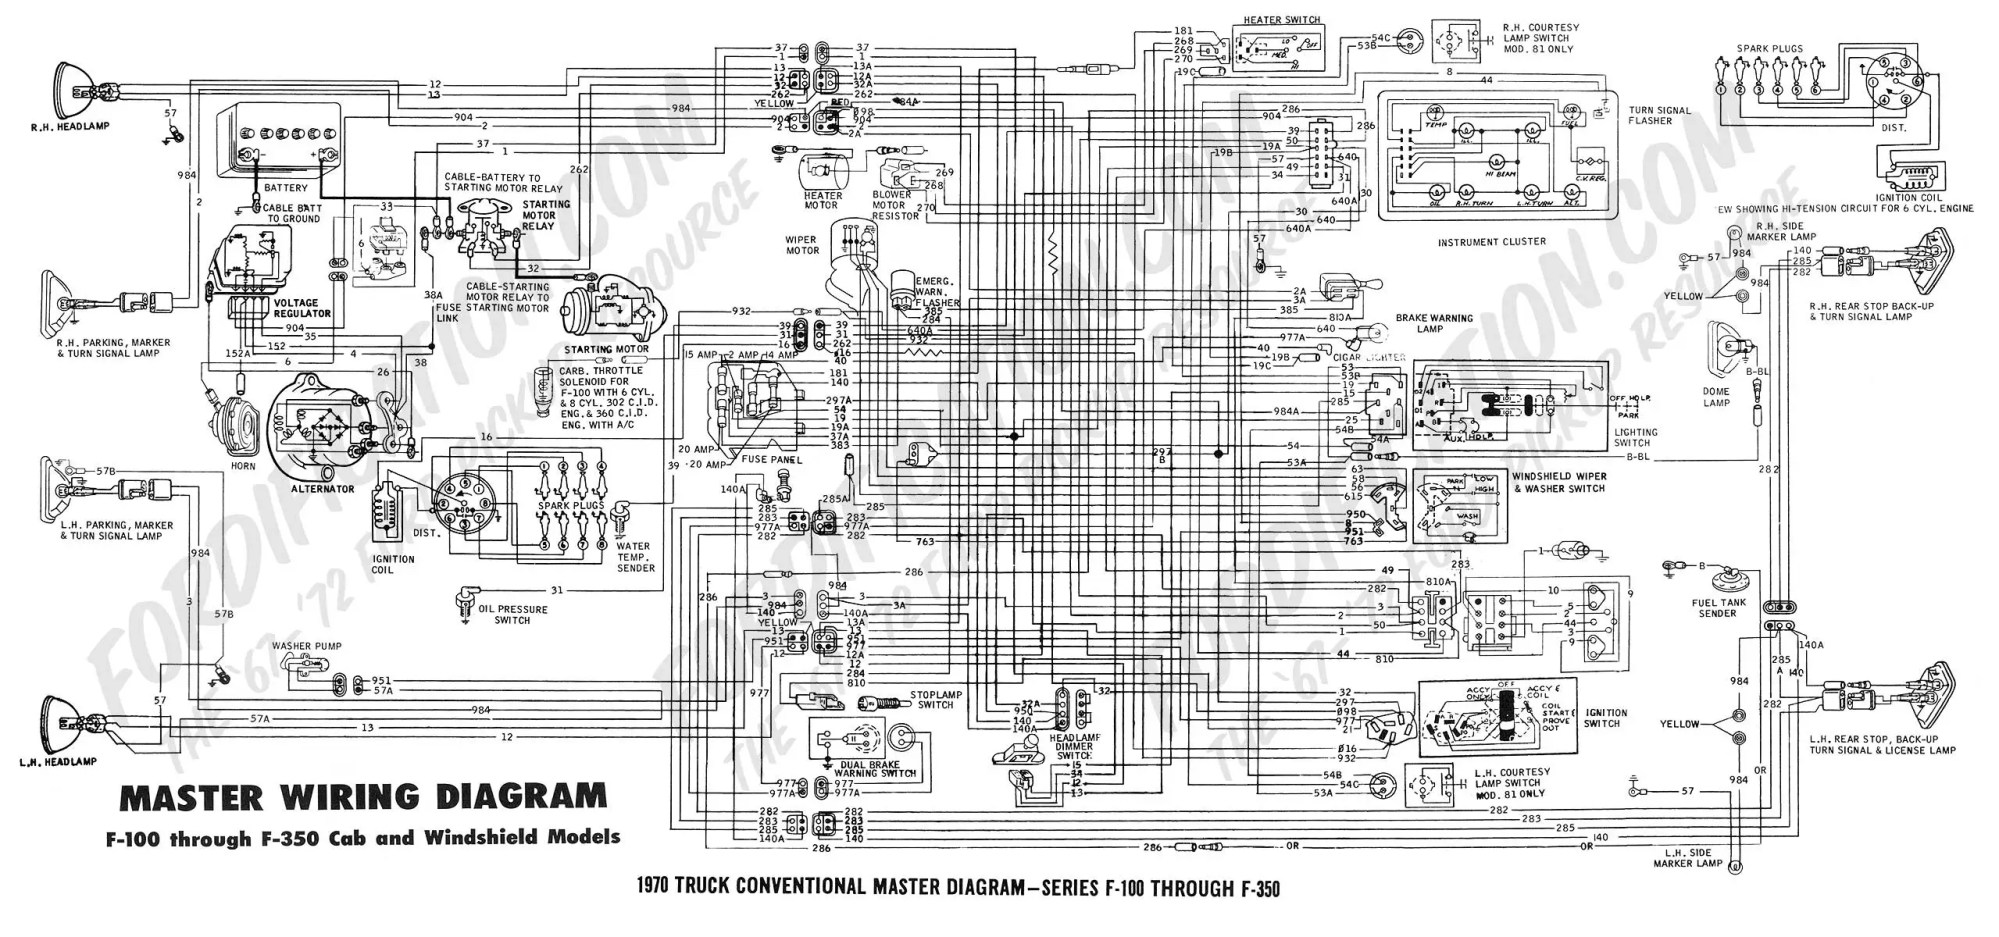 hight resolution of f250 wiring diagram wiring diagram third level rh 5 10 15 jacobwinterstein com 1999 ford f350 wiring diagram 2012 ford f250 wiring diagram